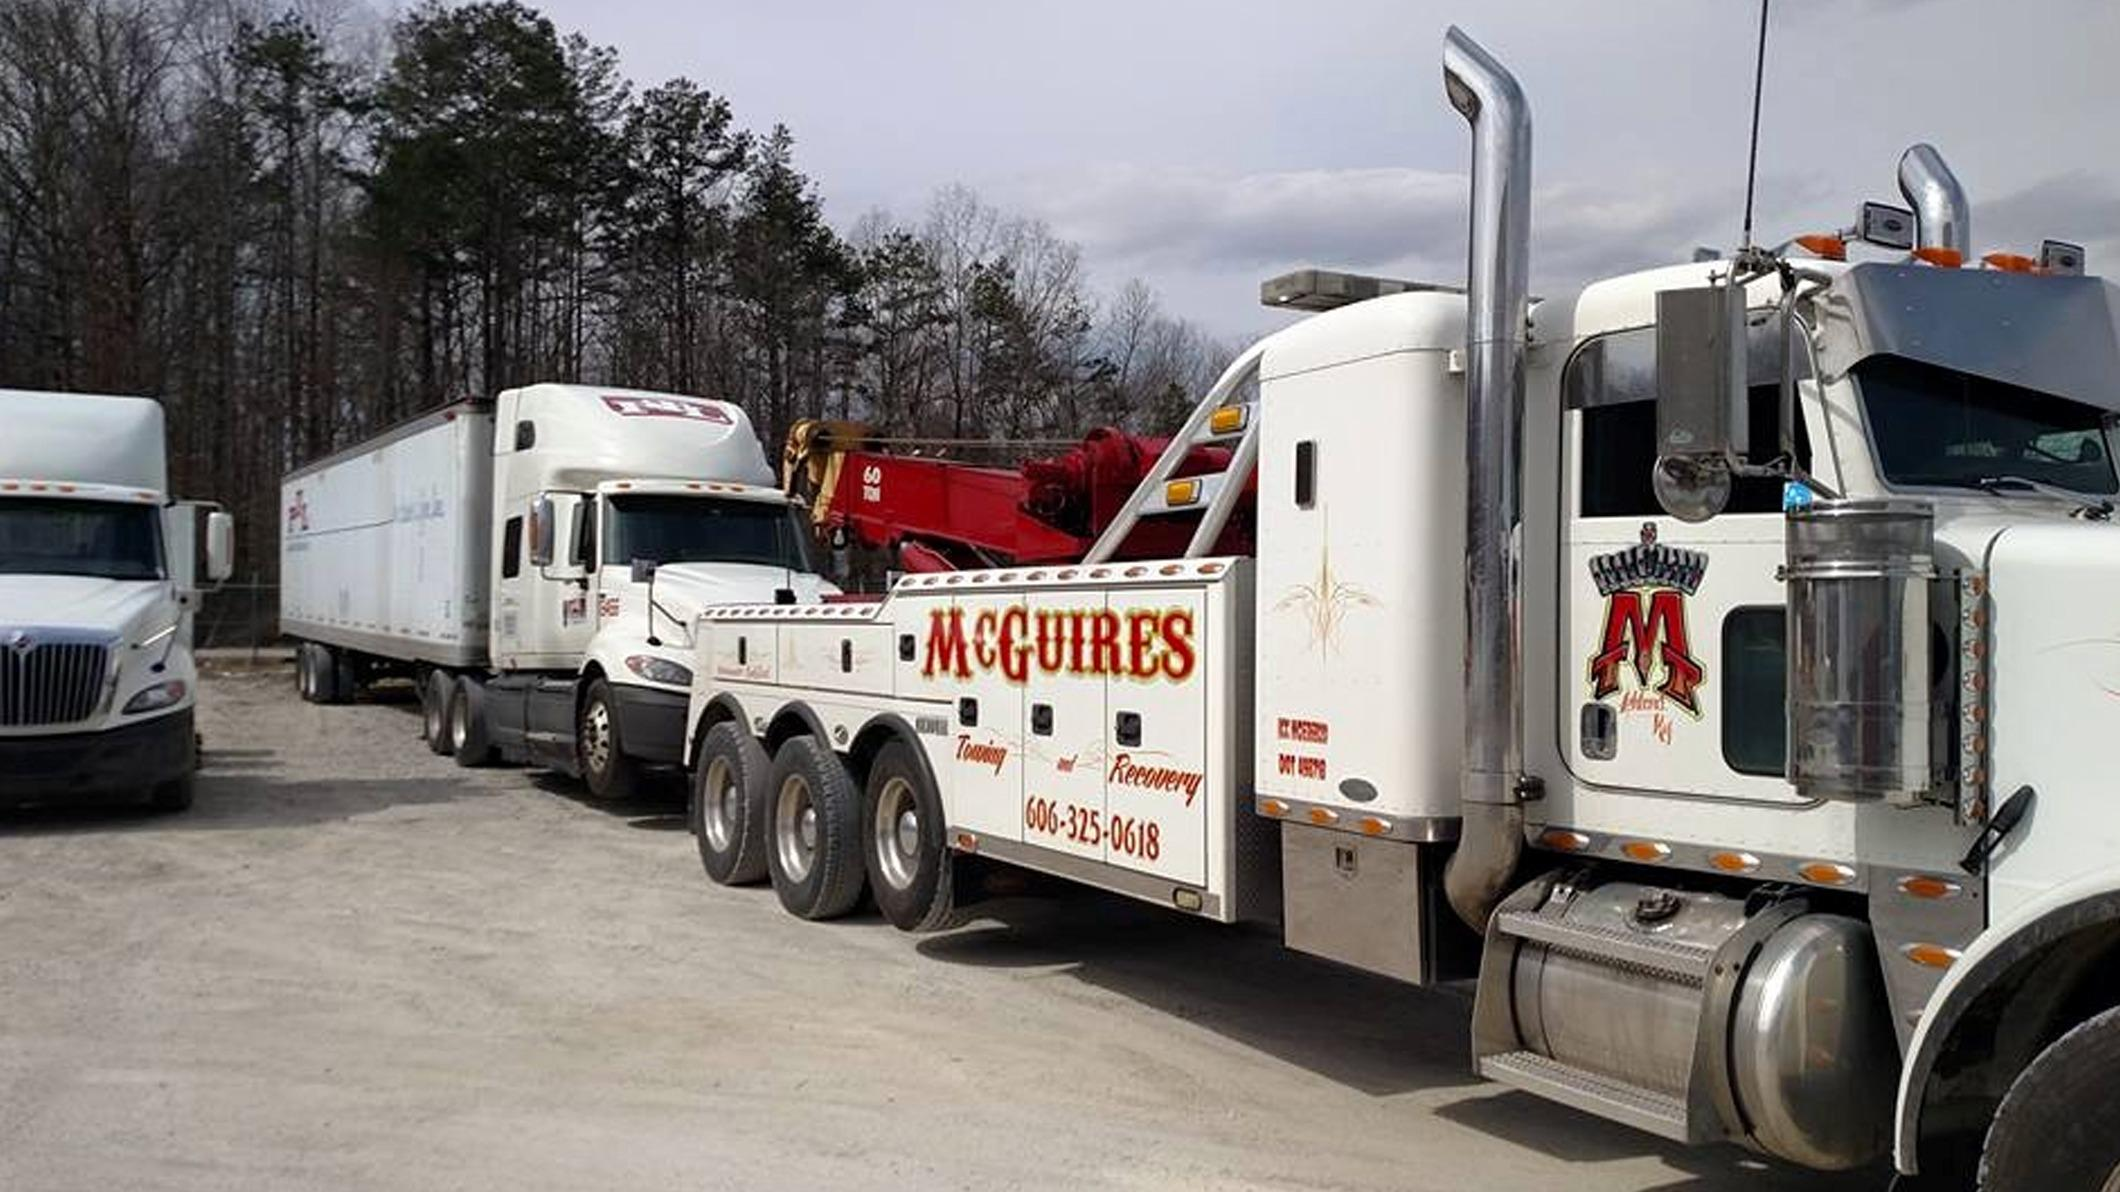 McGuire's Towing & Recovery image 1